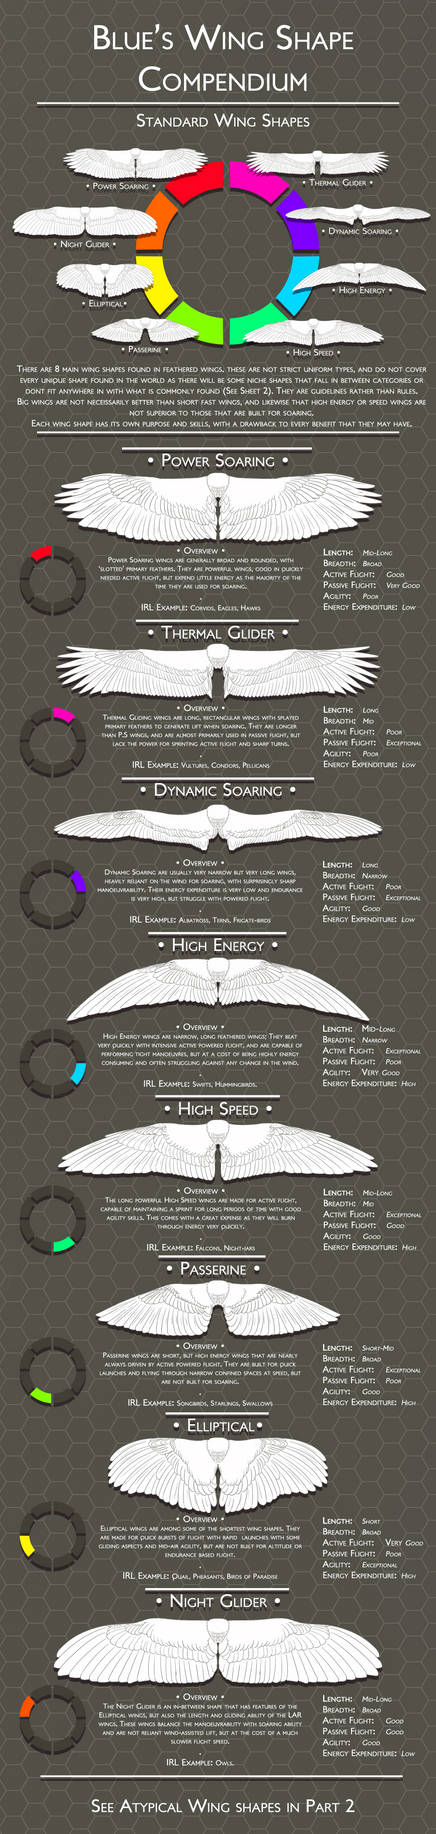 Wing Compendium: Standard Wing Shapes